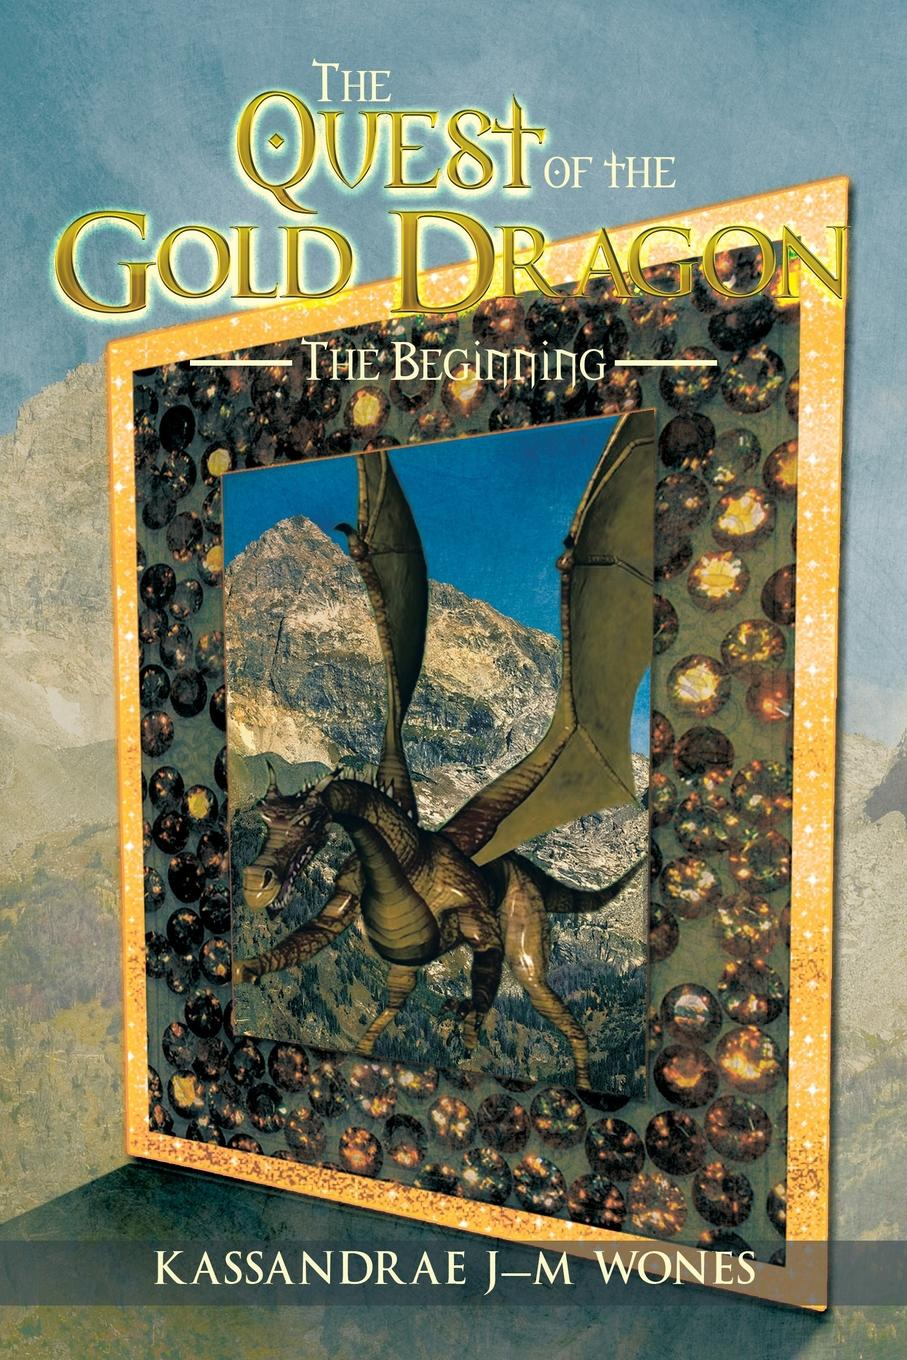 Kassandrae J-M Wones The Quest of the Gold Dragon. The Beginning